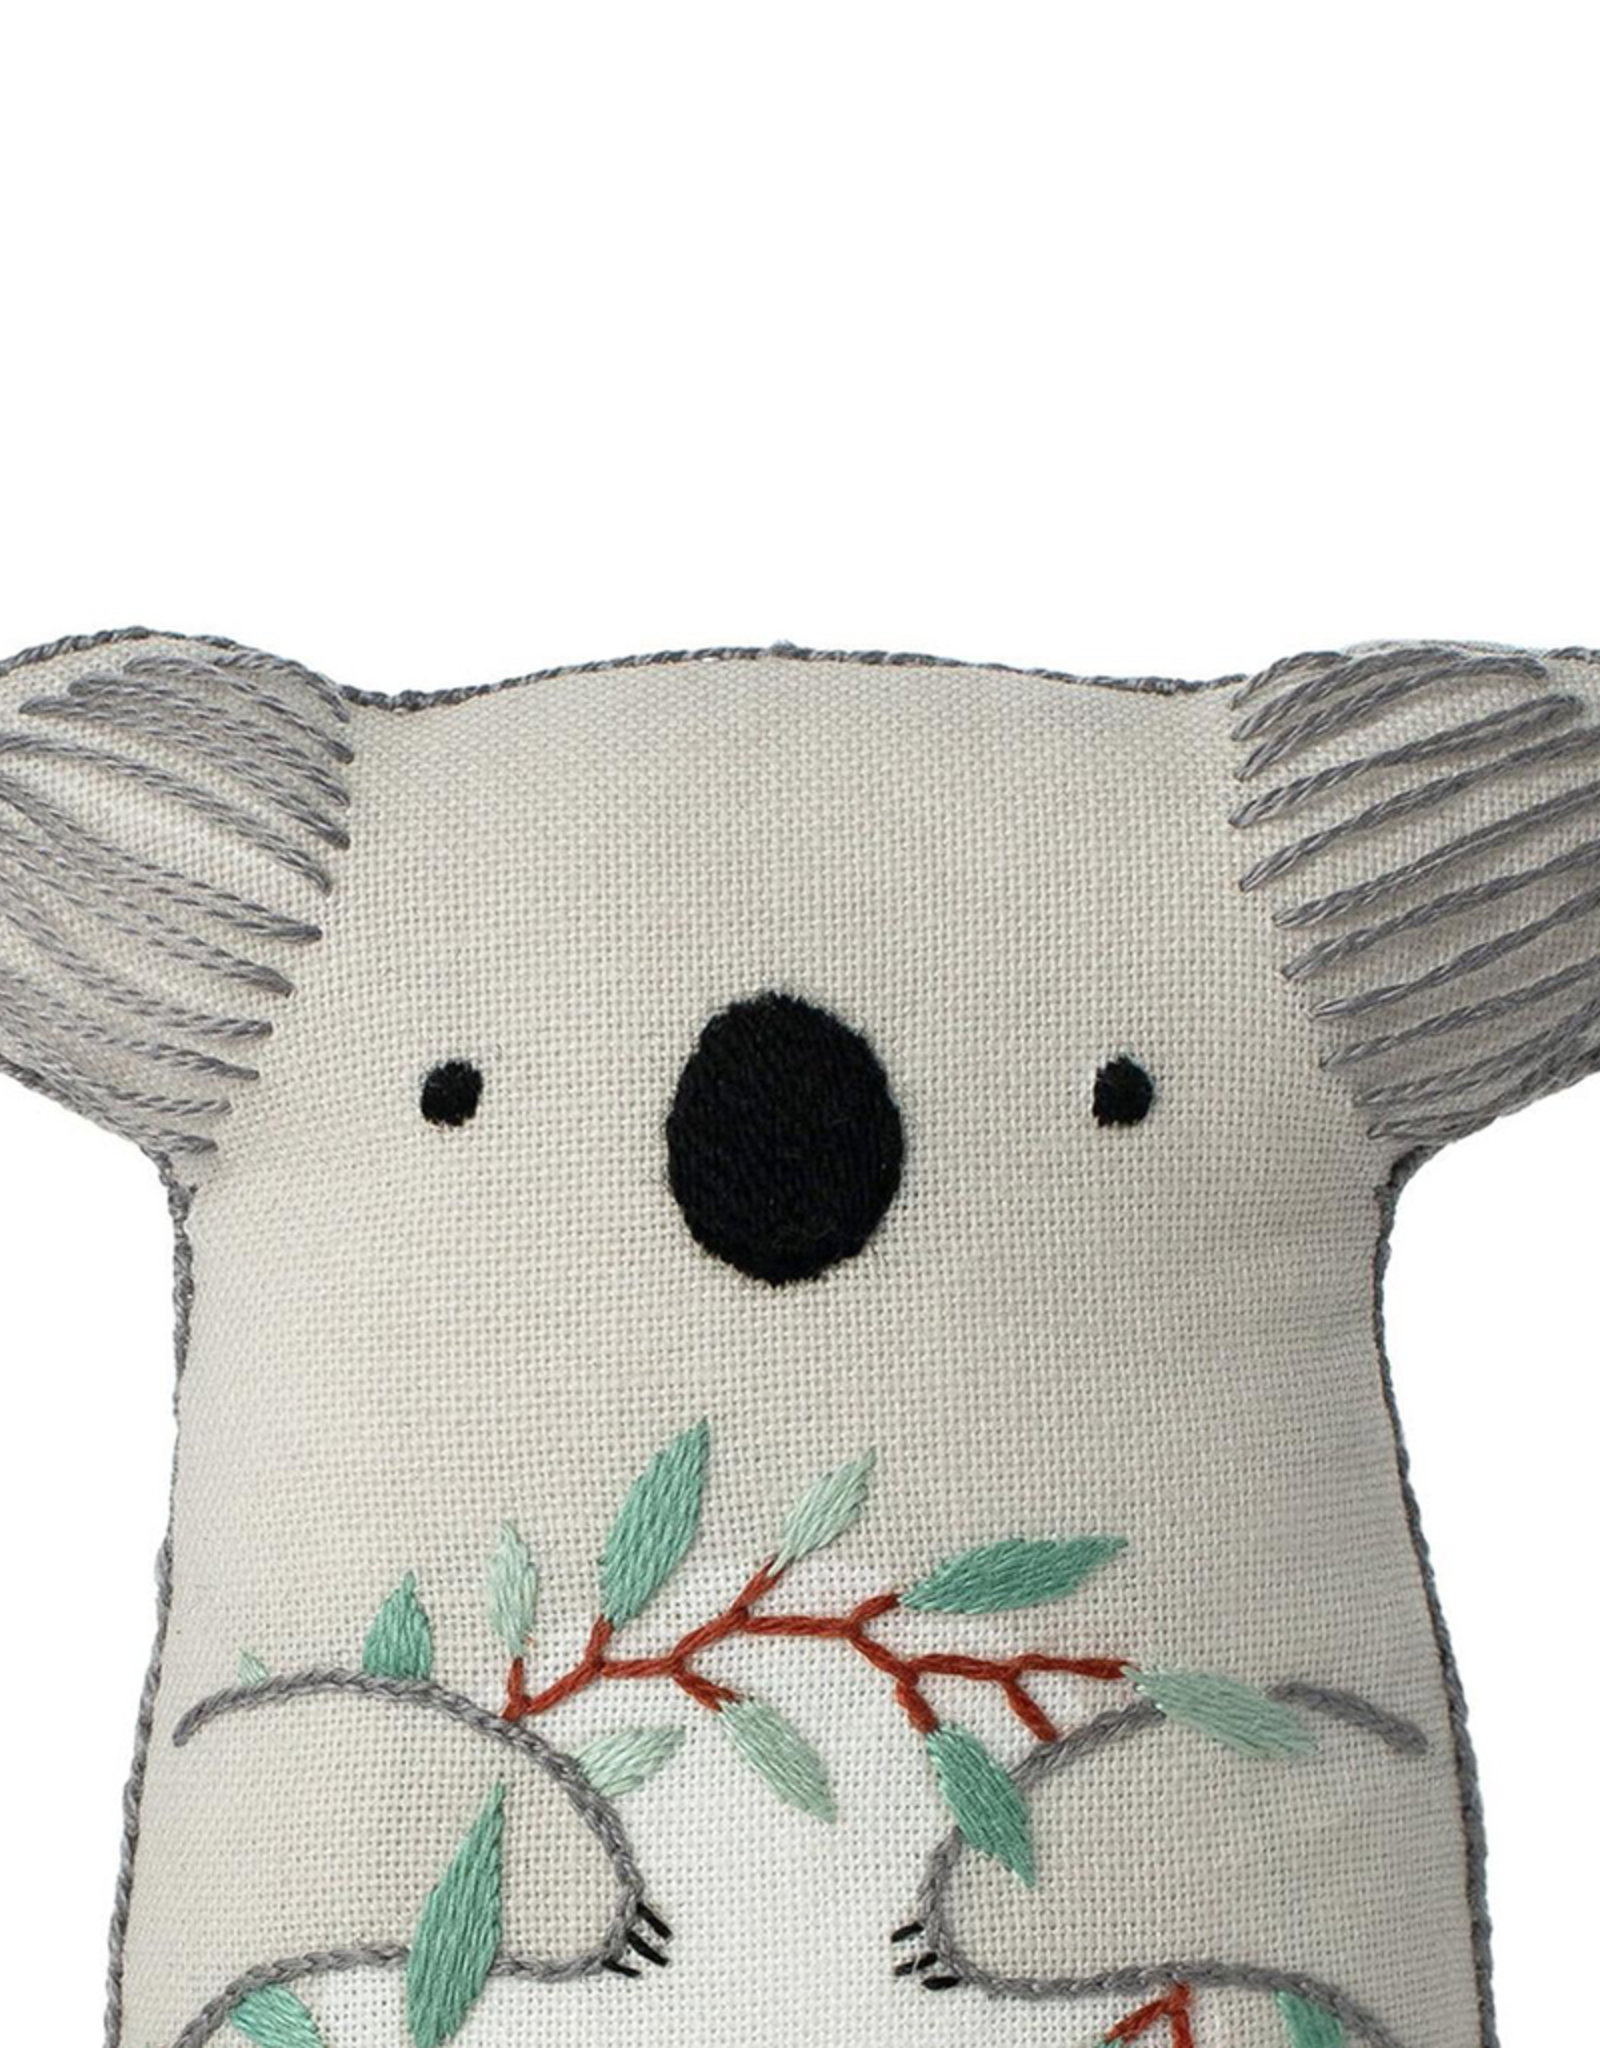 Handmade Embroidery Kit - Koala